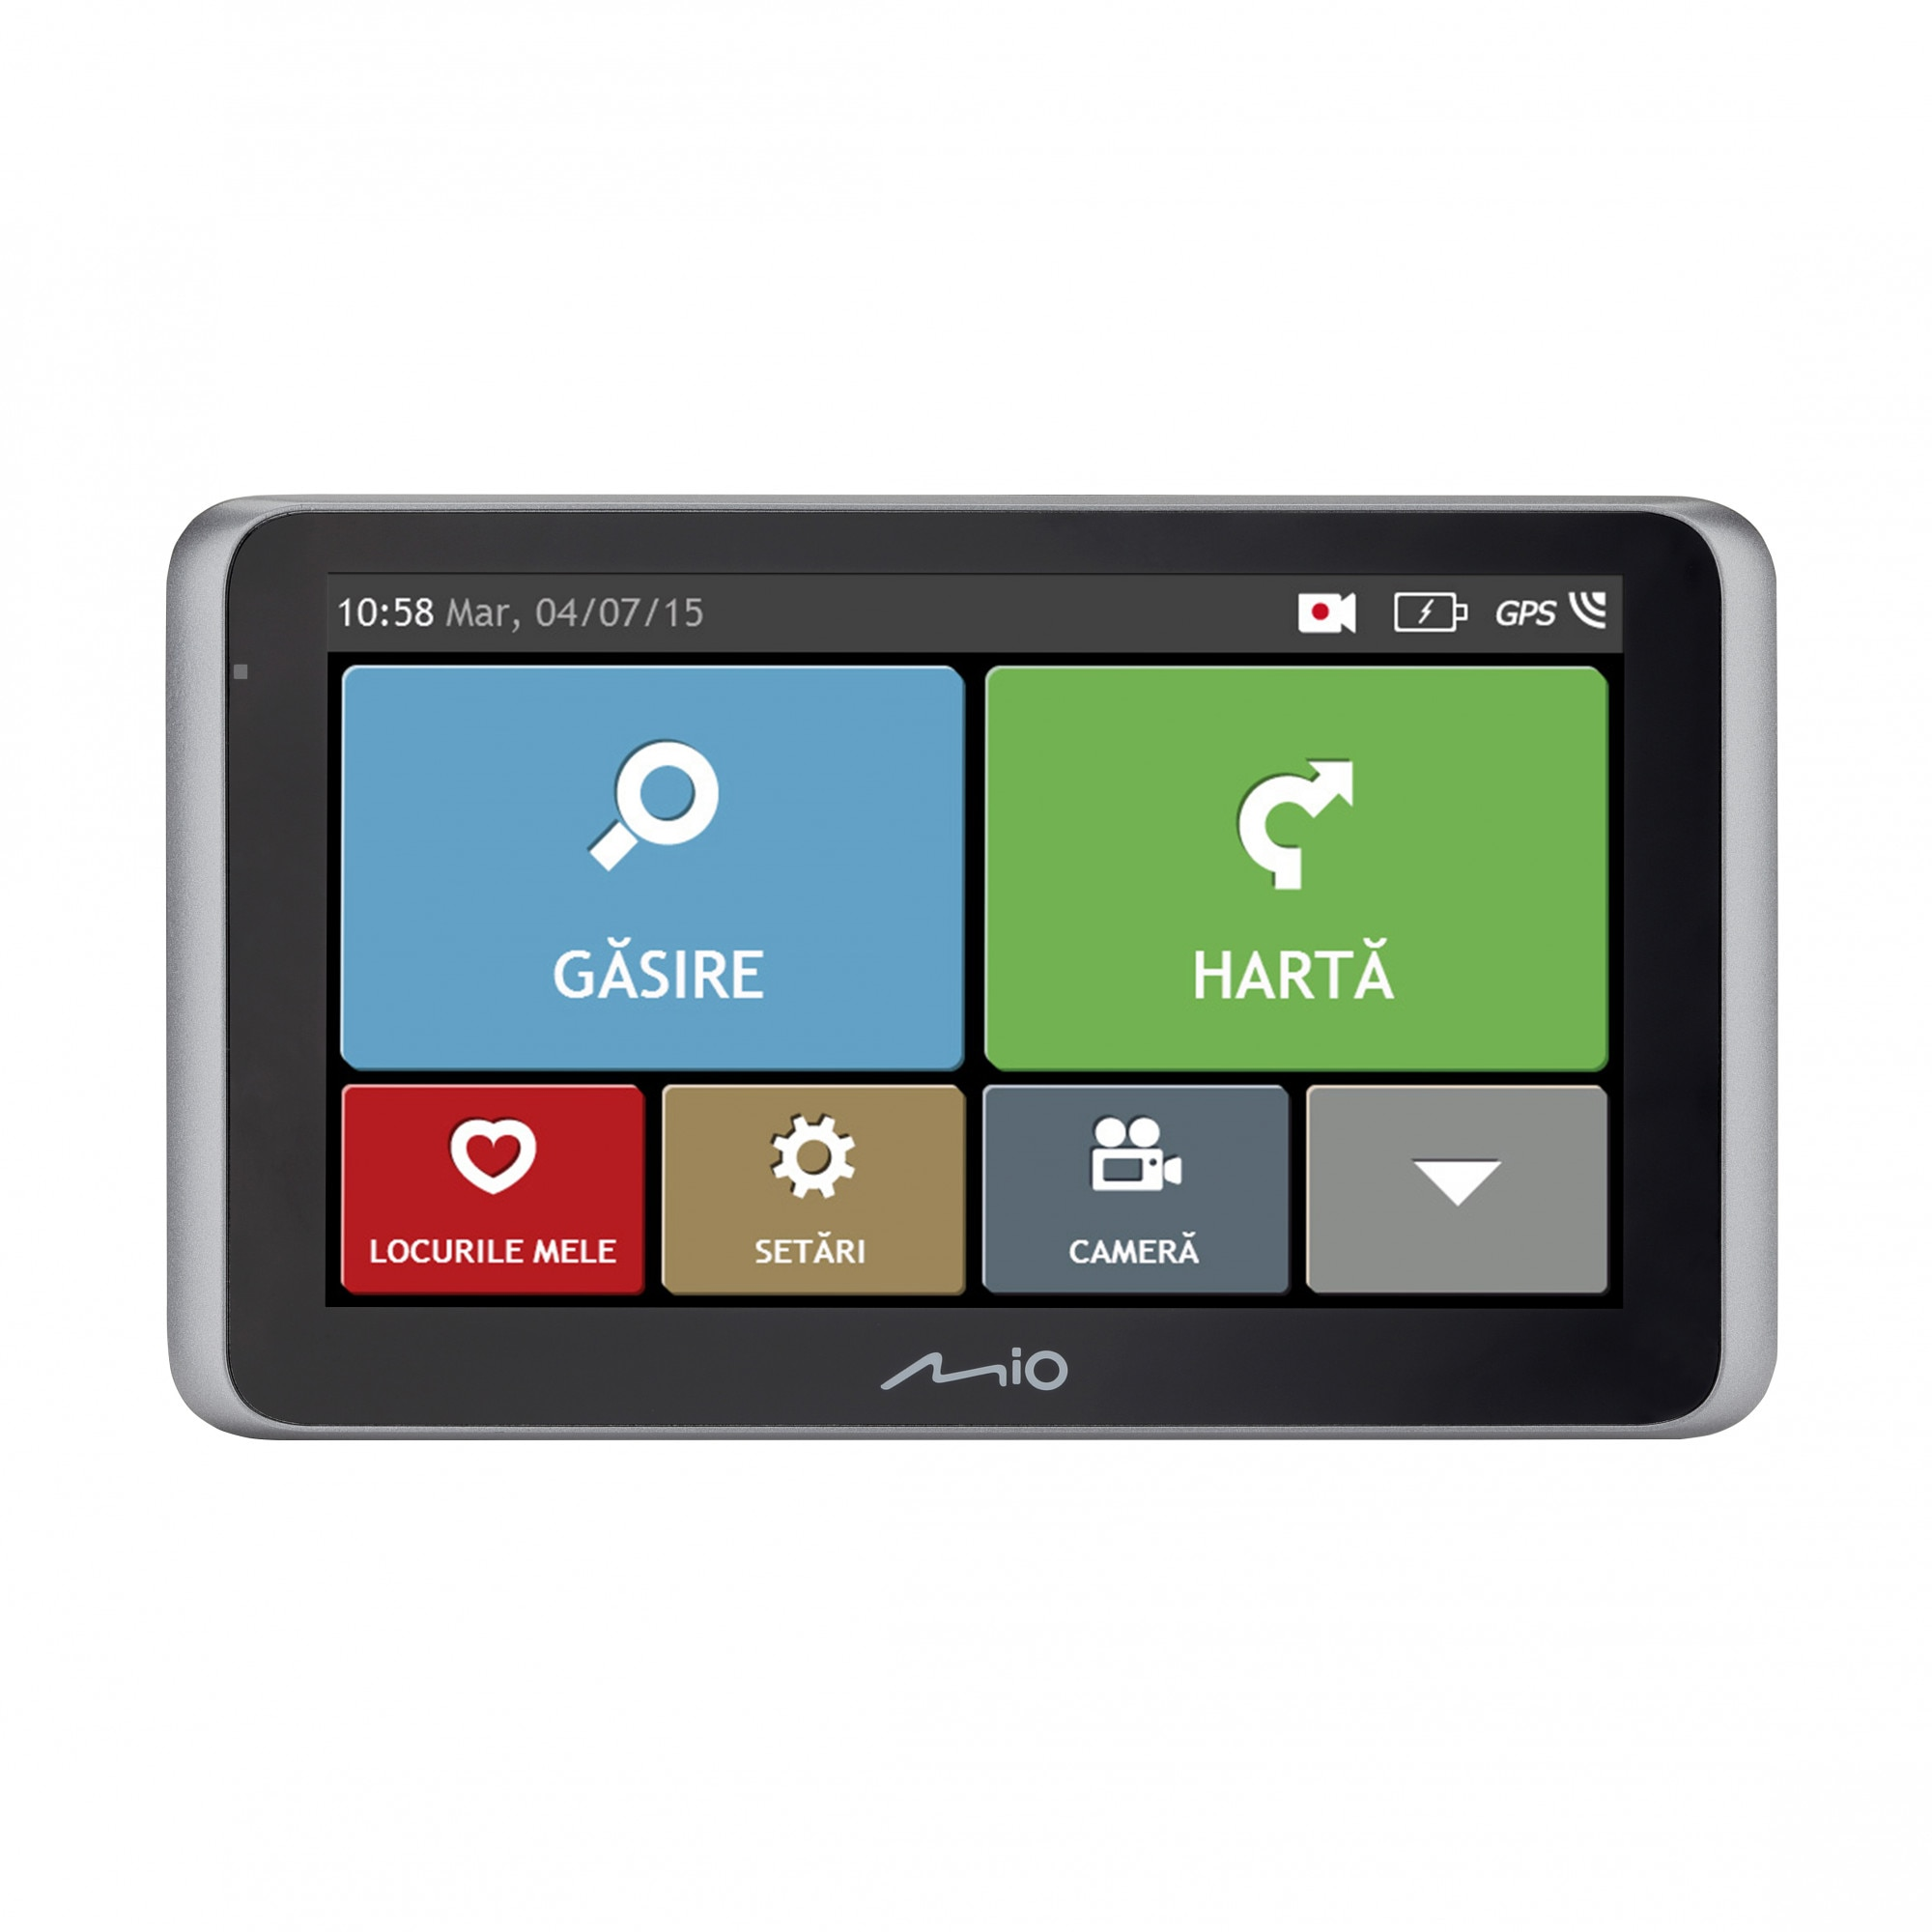 "Fotografie Sistem de navigatie + camera video integrata GPS Mio MiVue Drive 65 LM TMC, diagonala 6"", card 16 GB inclus, bluetooth, Harta Full Europe + Update gratuit al hartilor pe viata"